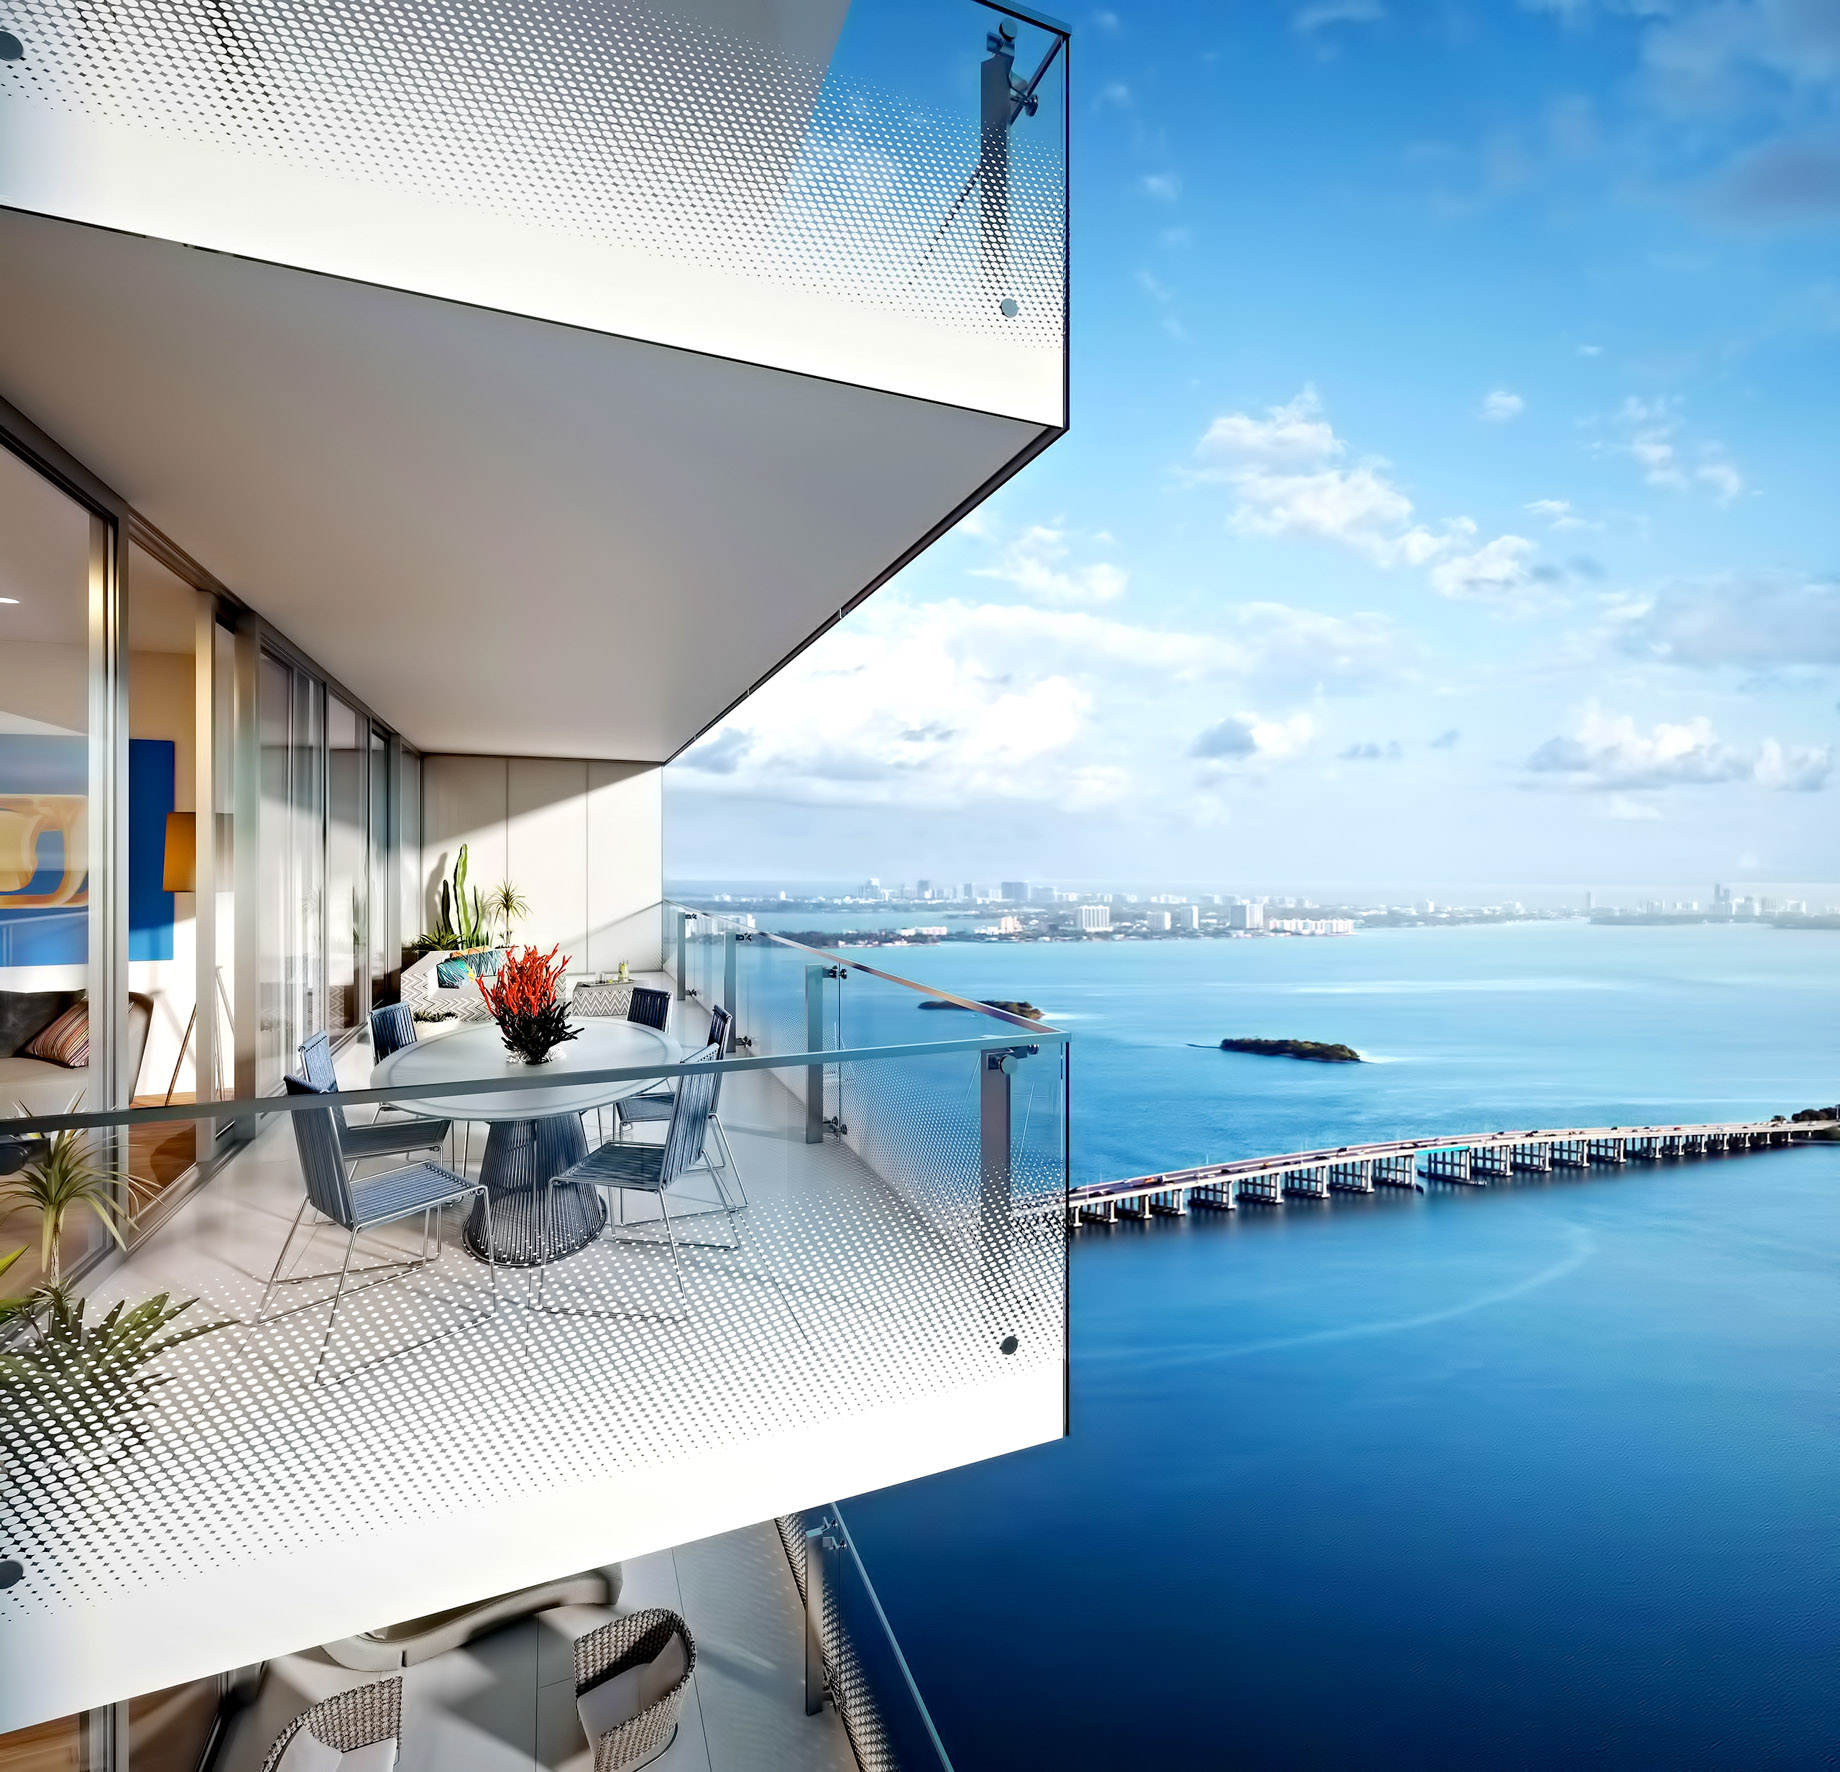 Missoni Baia Balcony Panoramic Views - 777 Northeast 26th Terrace, Miami, FL, USA